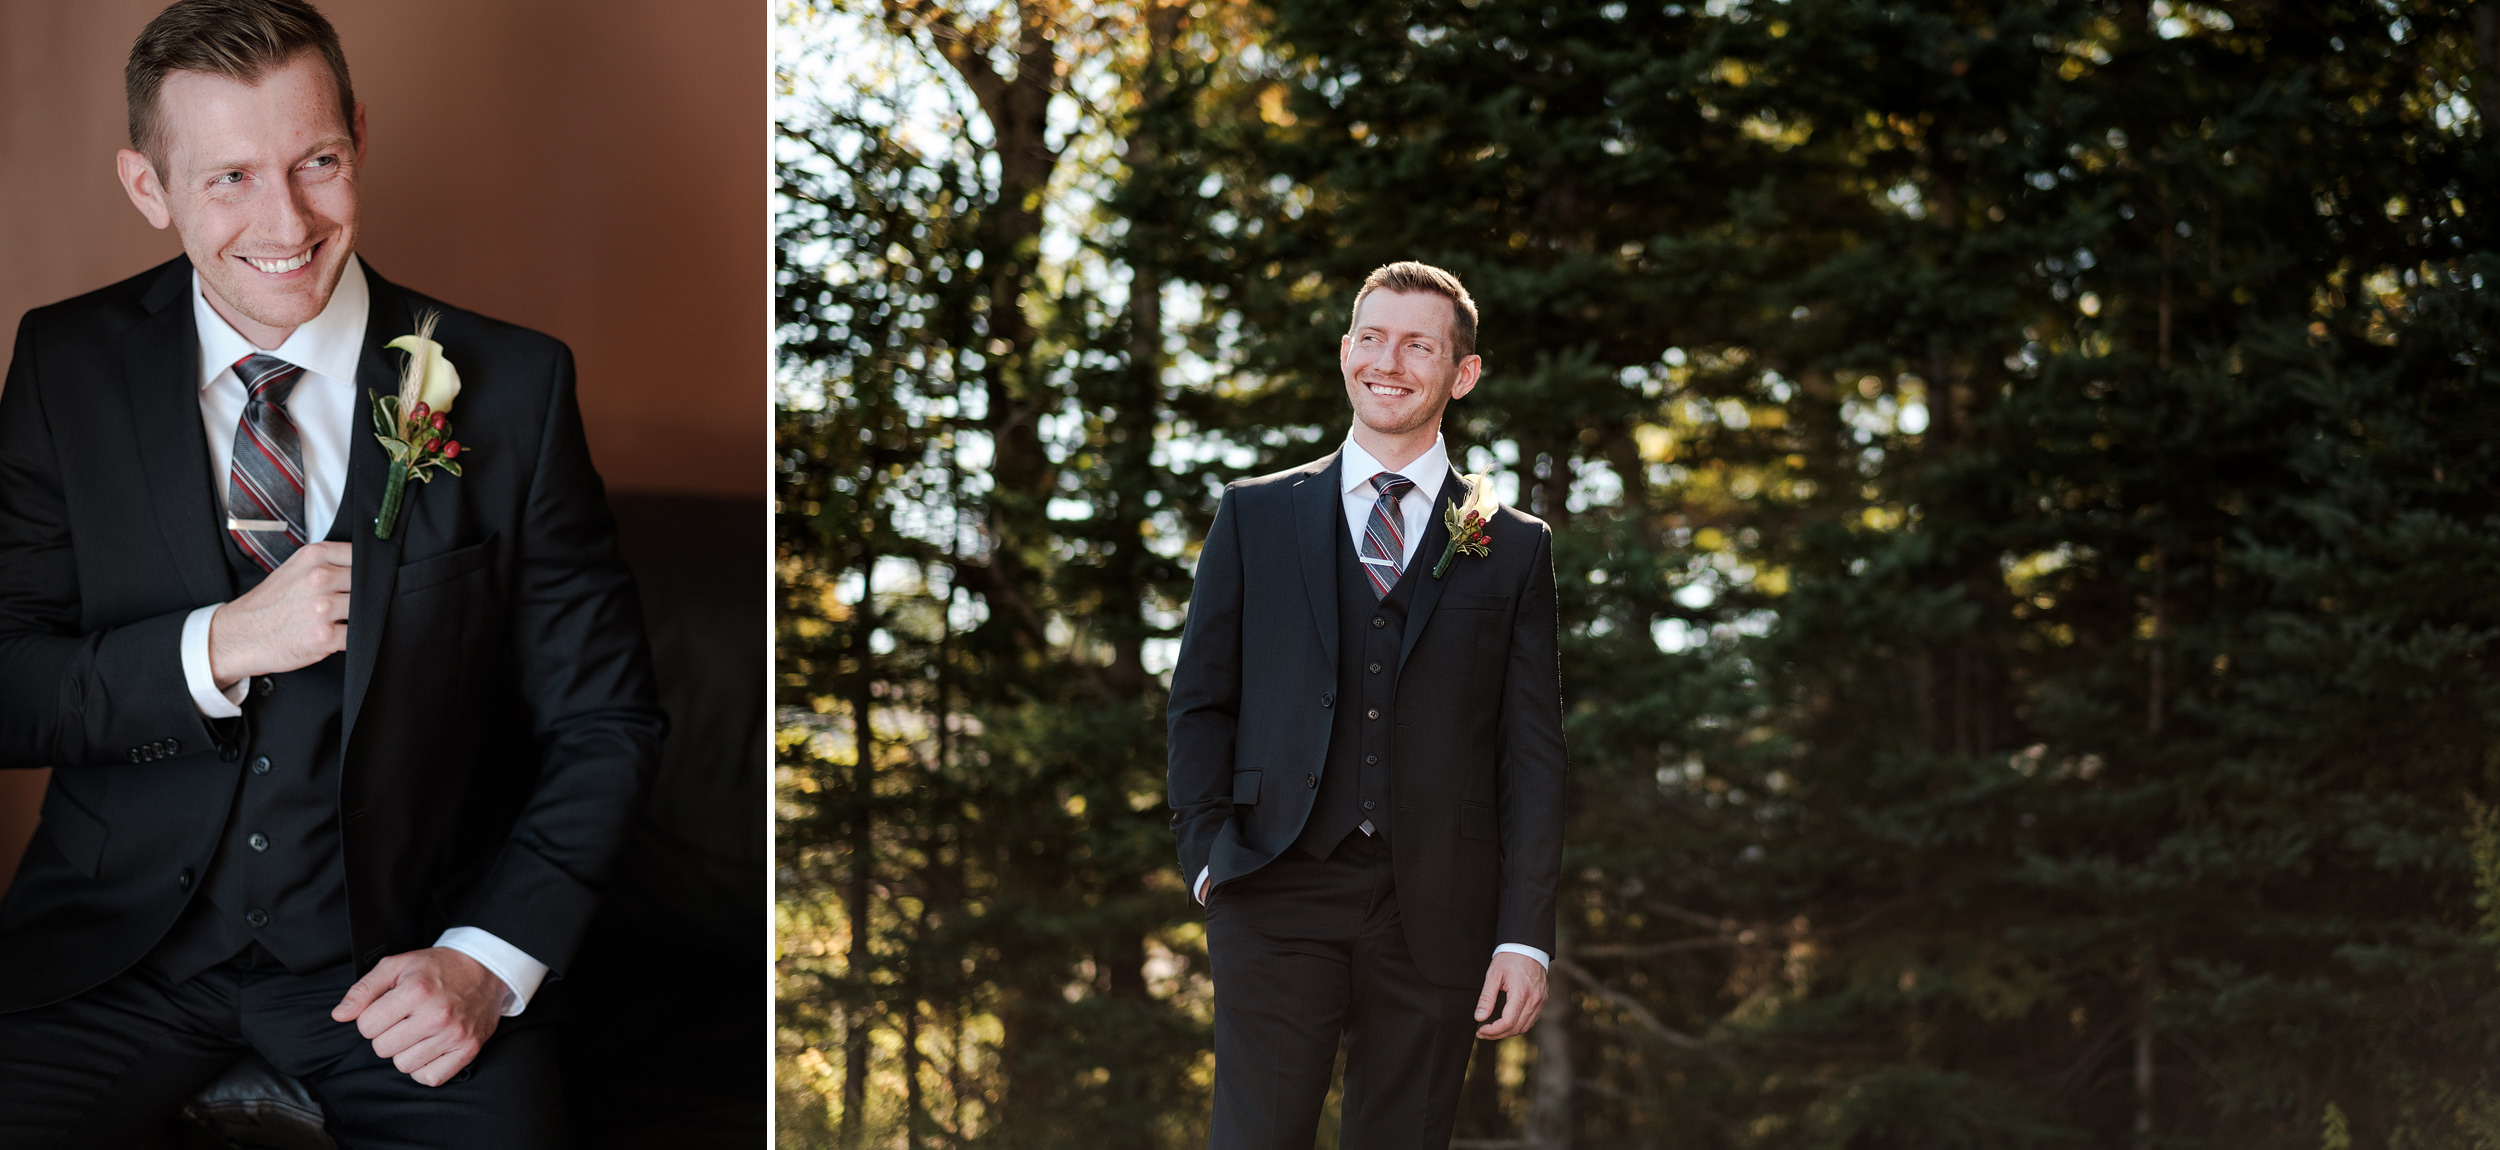 membertou sydney wedding